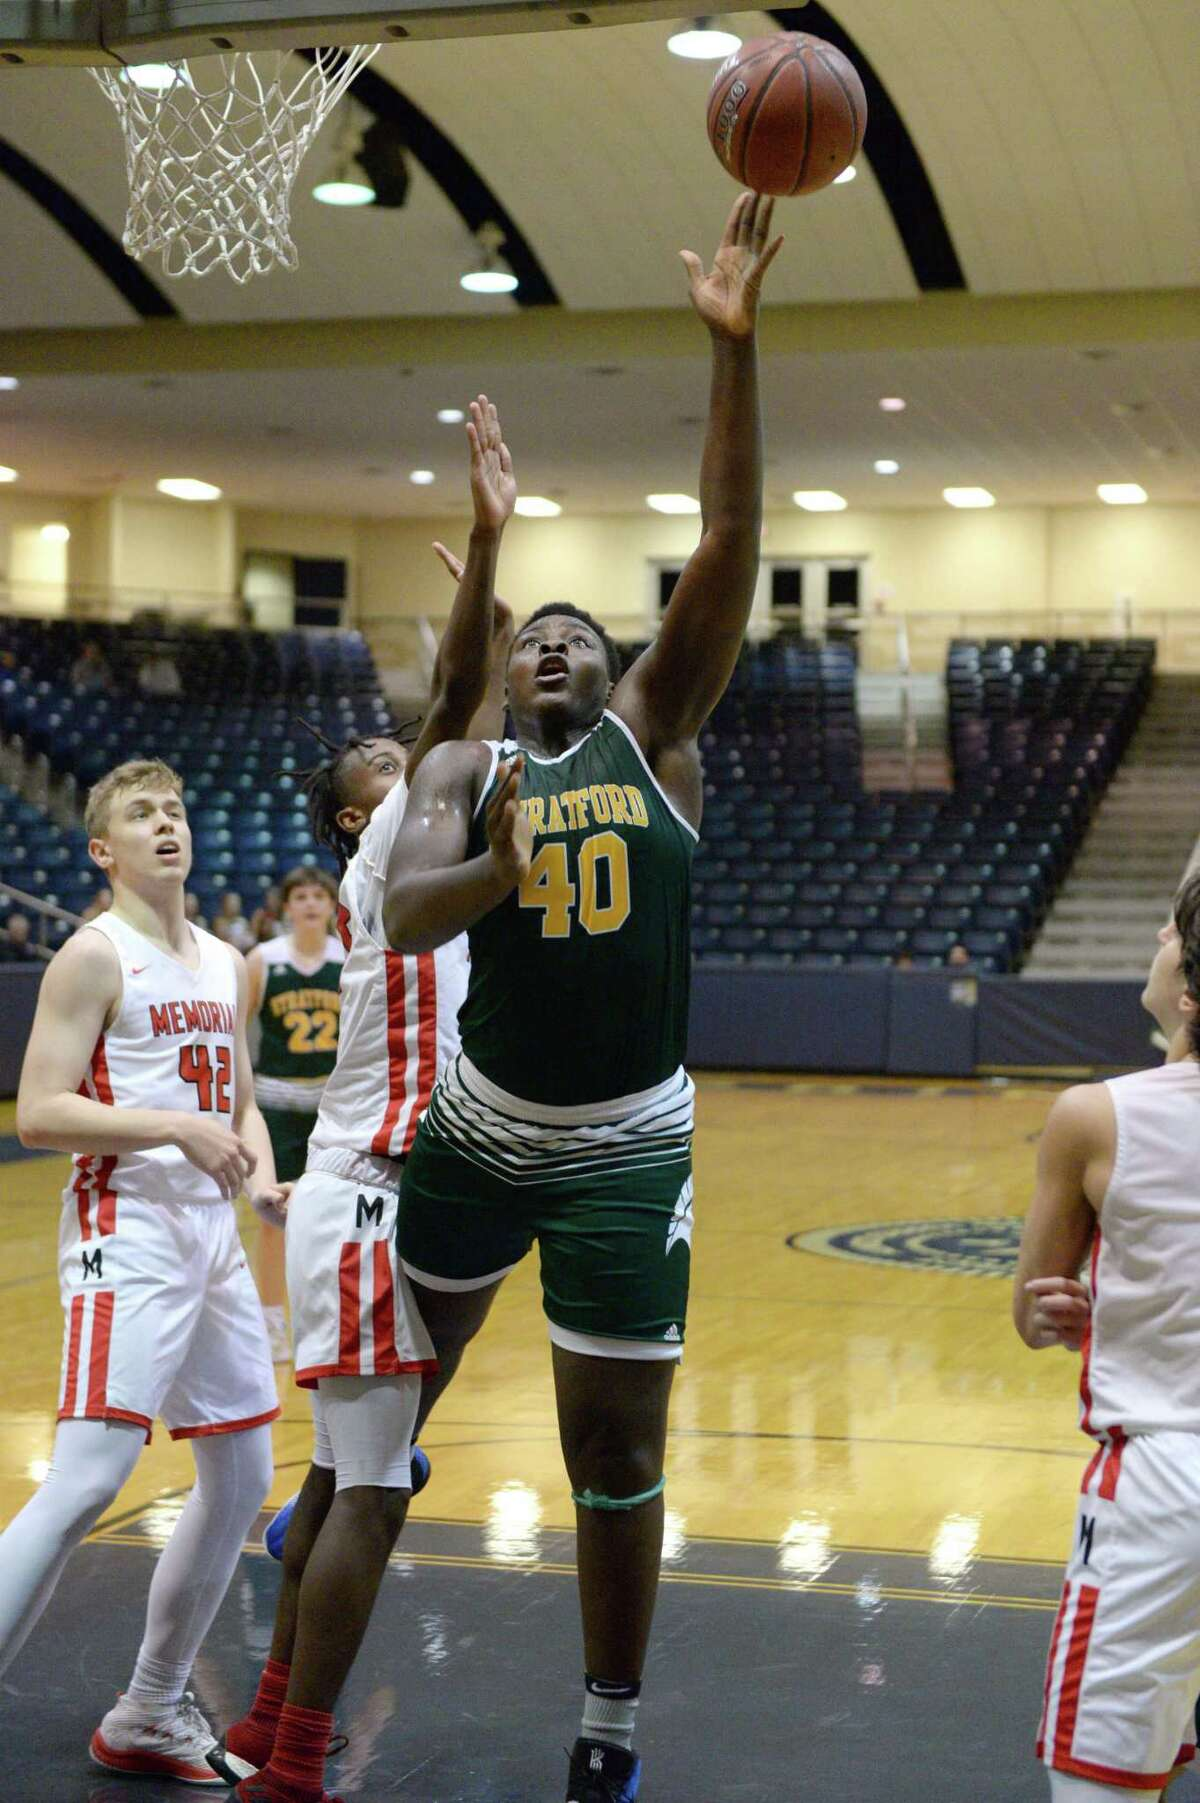 Hector Igbikiowubo (40) of Stratford attempts a lay-up during the second half of a 6A Region III District 17 Boys basketball game between the Memorial Mustangs and the Stratford Spartans on Tuesday, December 17, 2019 at Coleman Coliseum, Houston, TX.